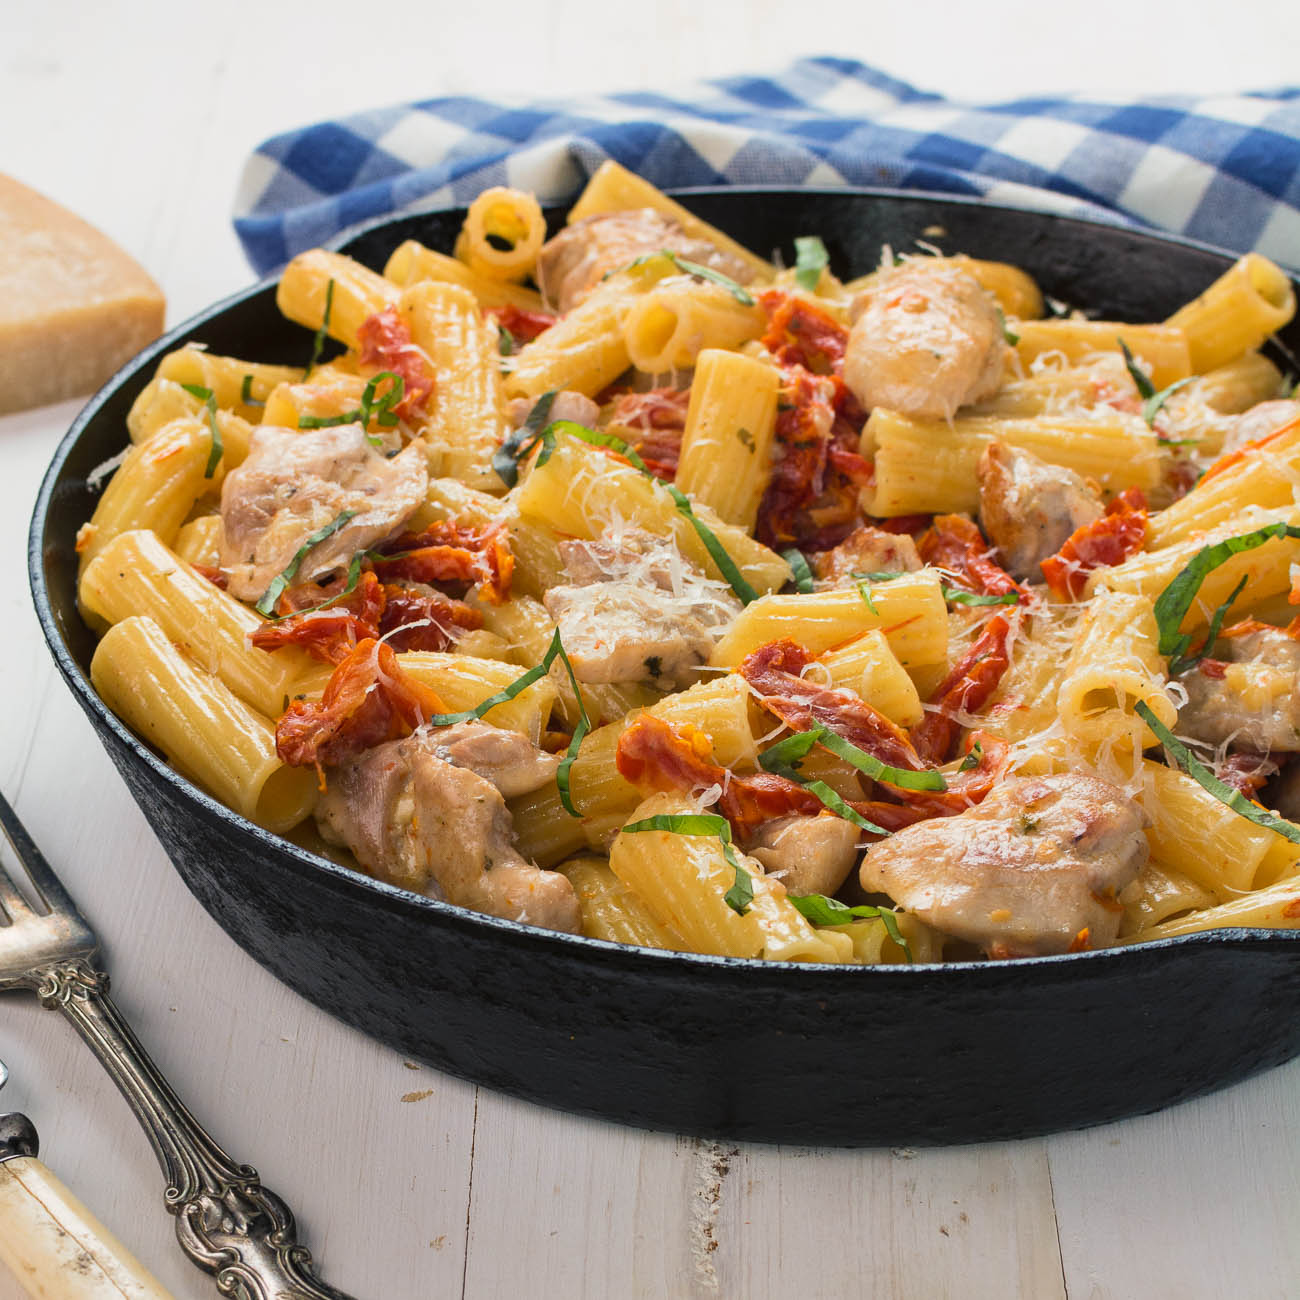 Penne with sun-dried tomato cream sauce in 30 minutes.